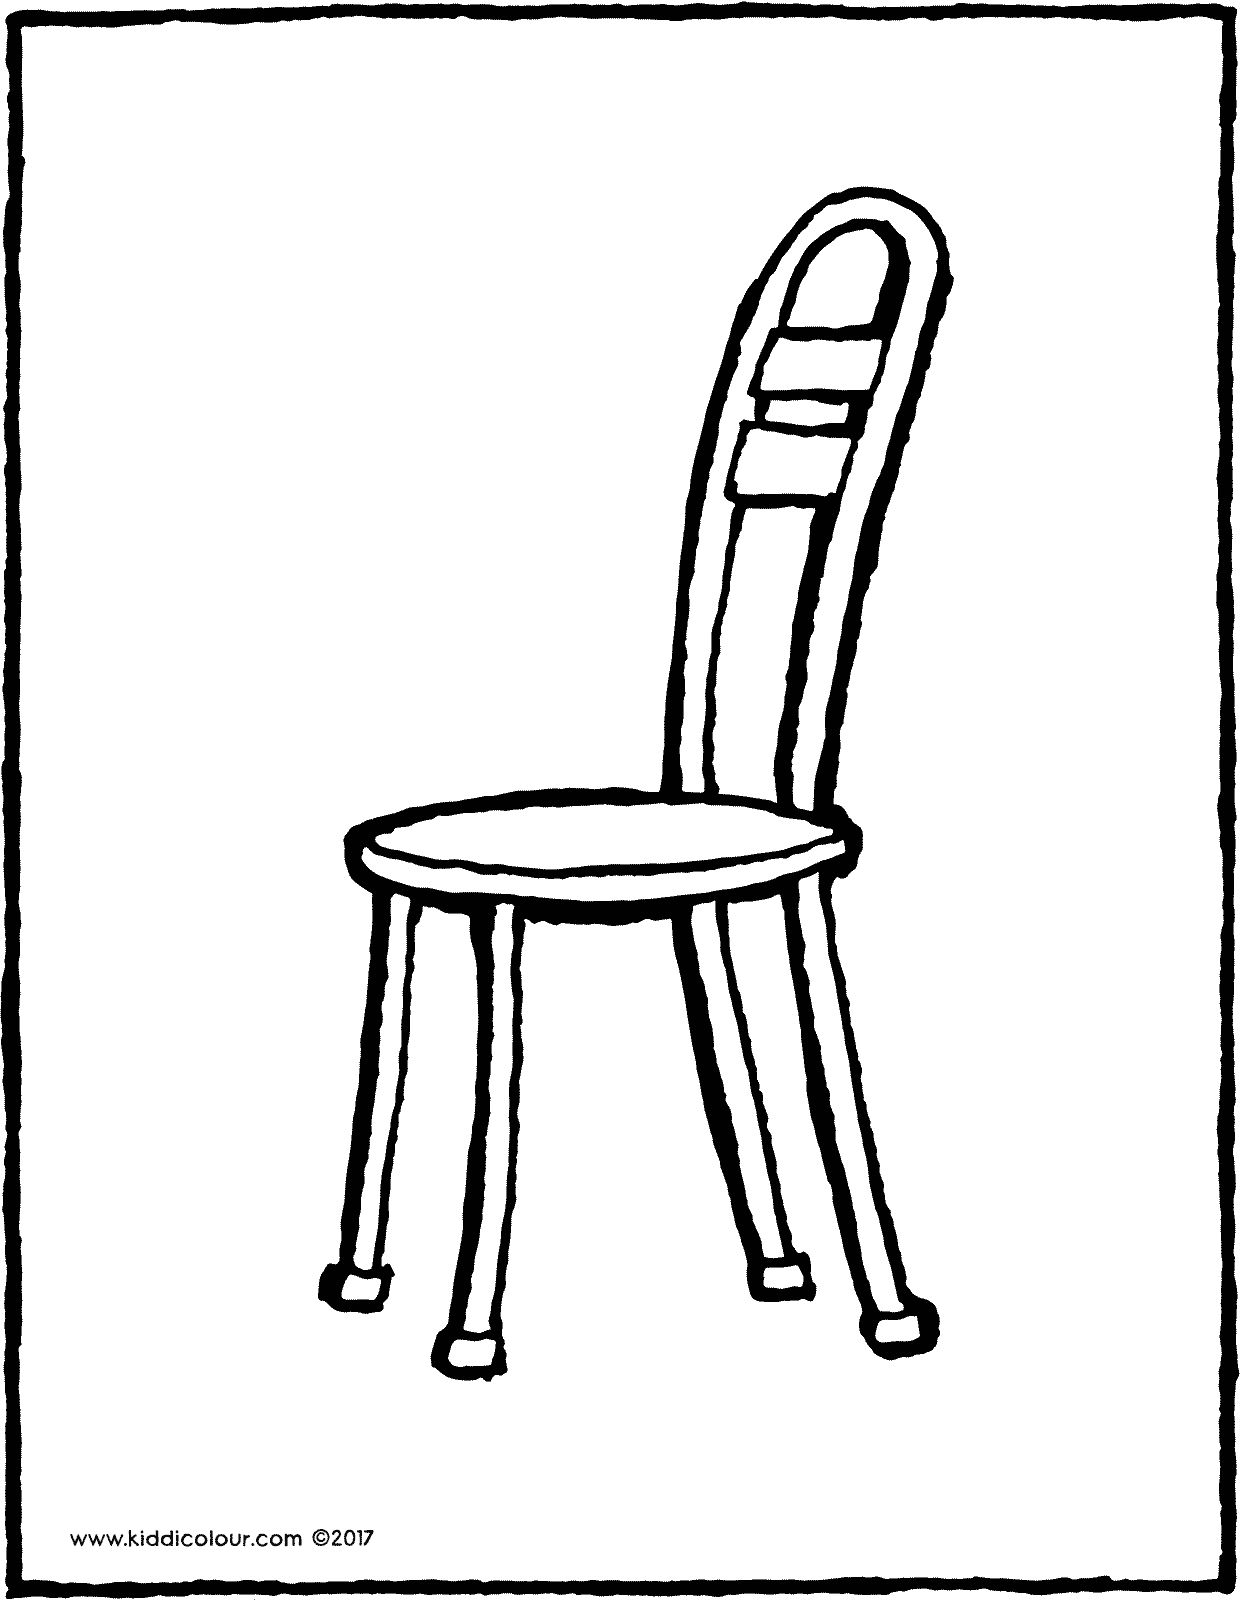 chair colouring page drawing picture 04V